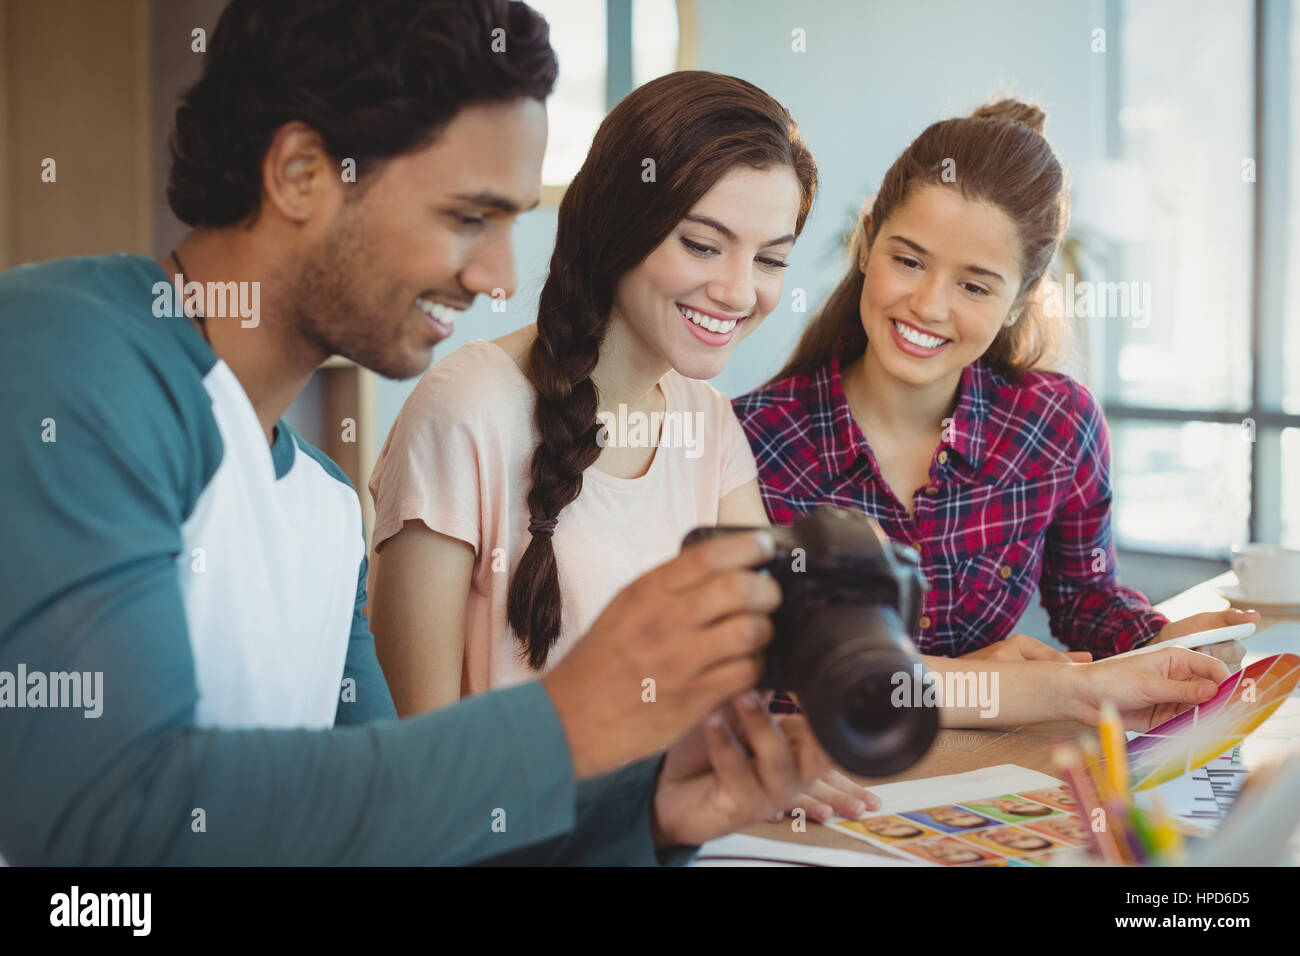 Fashion designers looking at photographs in digital camera at office - Stock Image